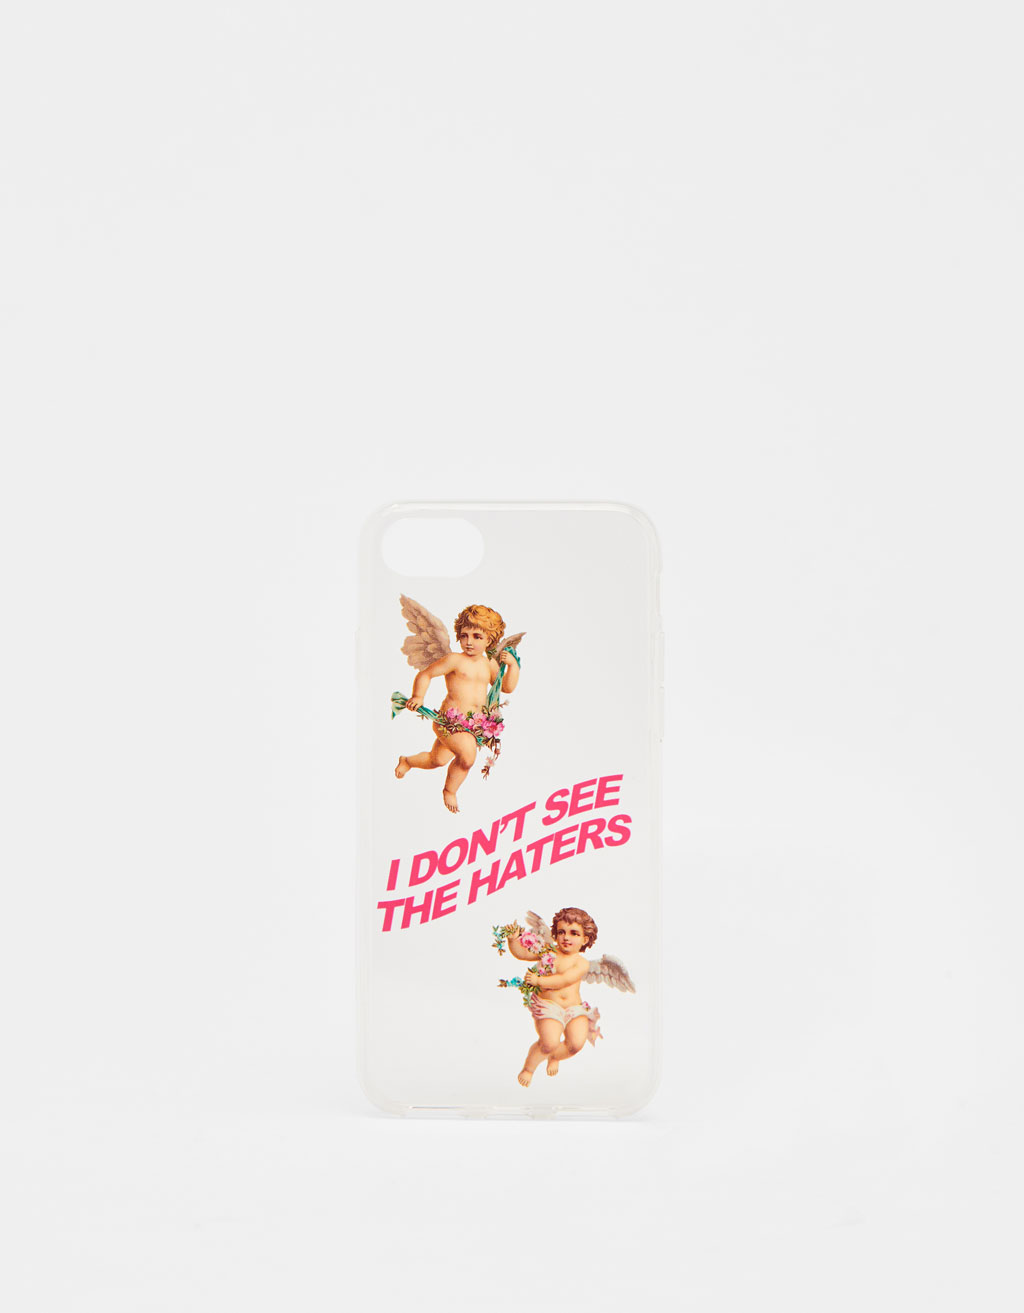 Angel print iPhone 6 / 6S / 7 / 8 case